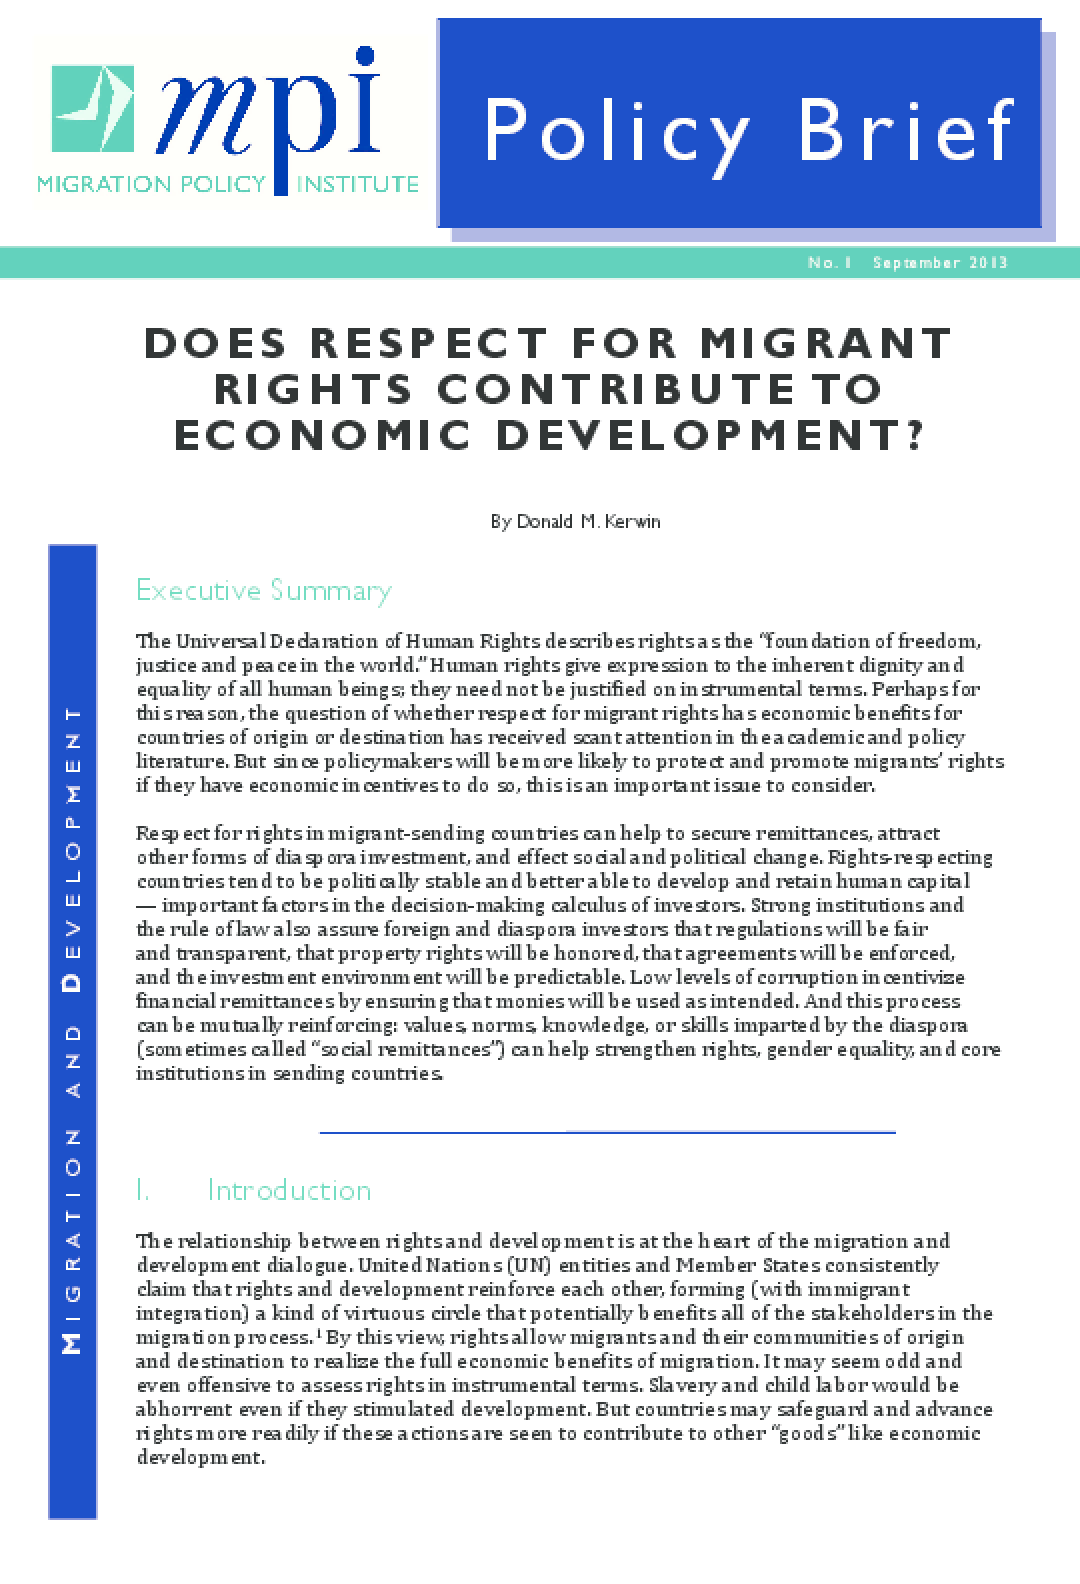 Does Respect for Migrant Rights Contribute to Economic Development?